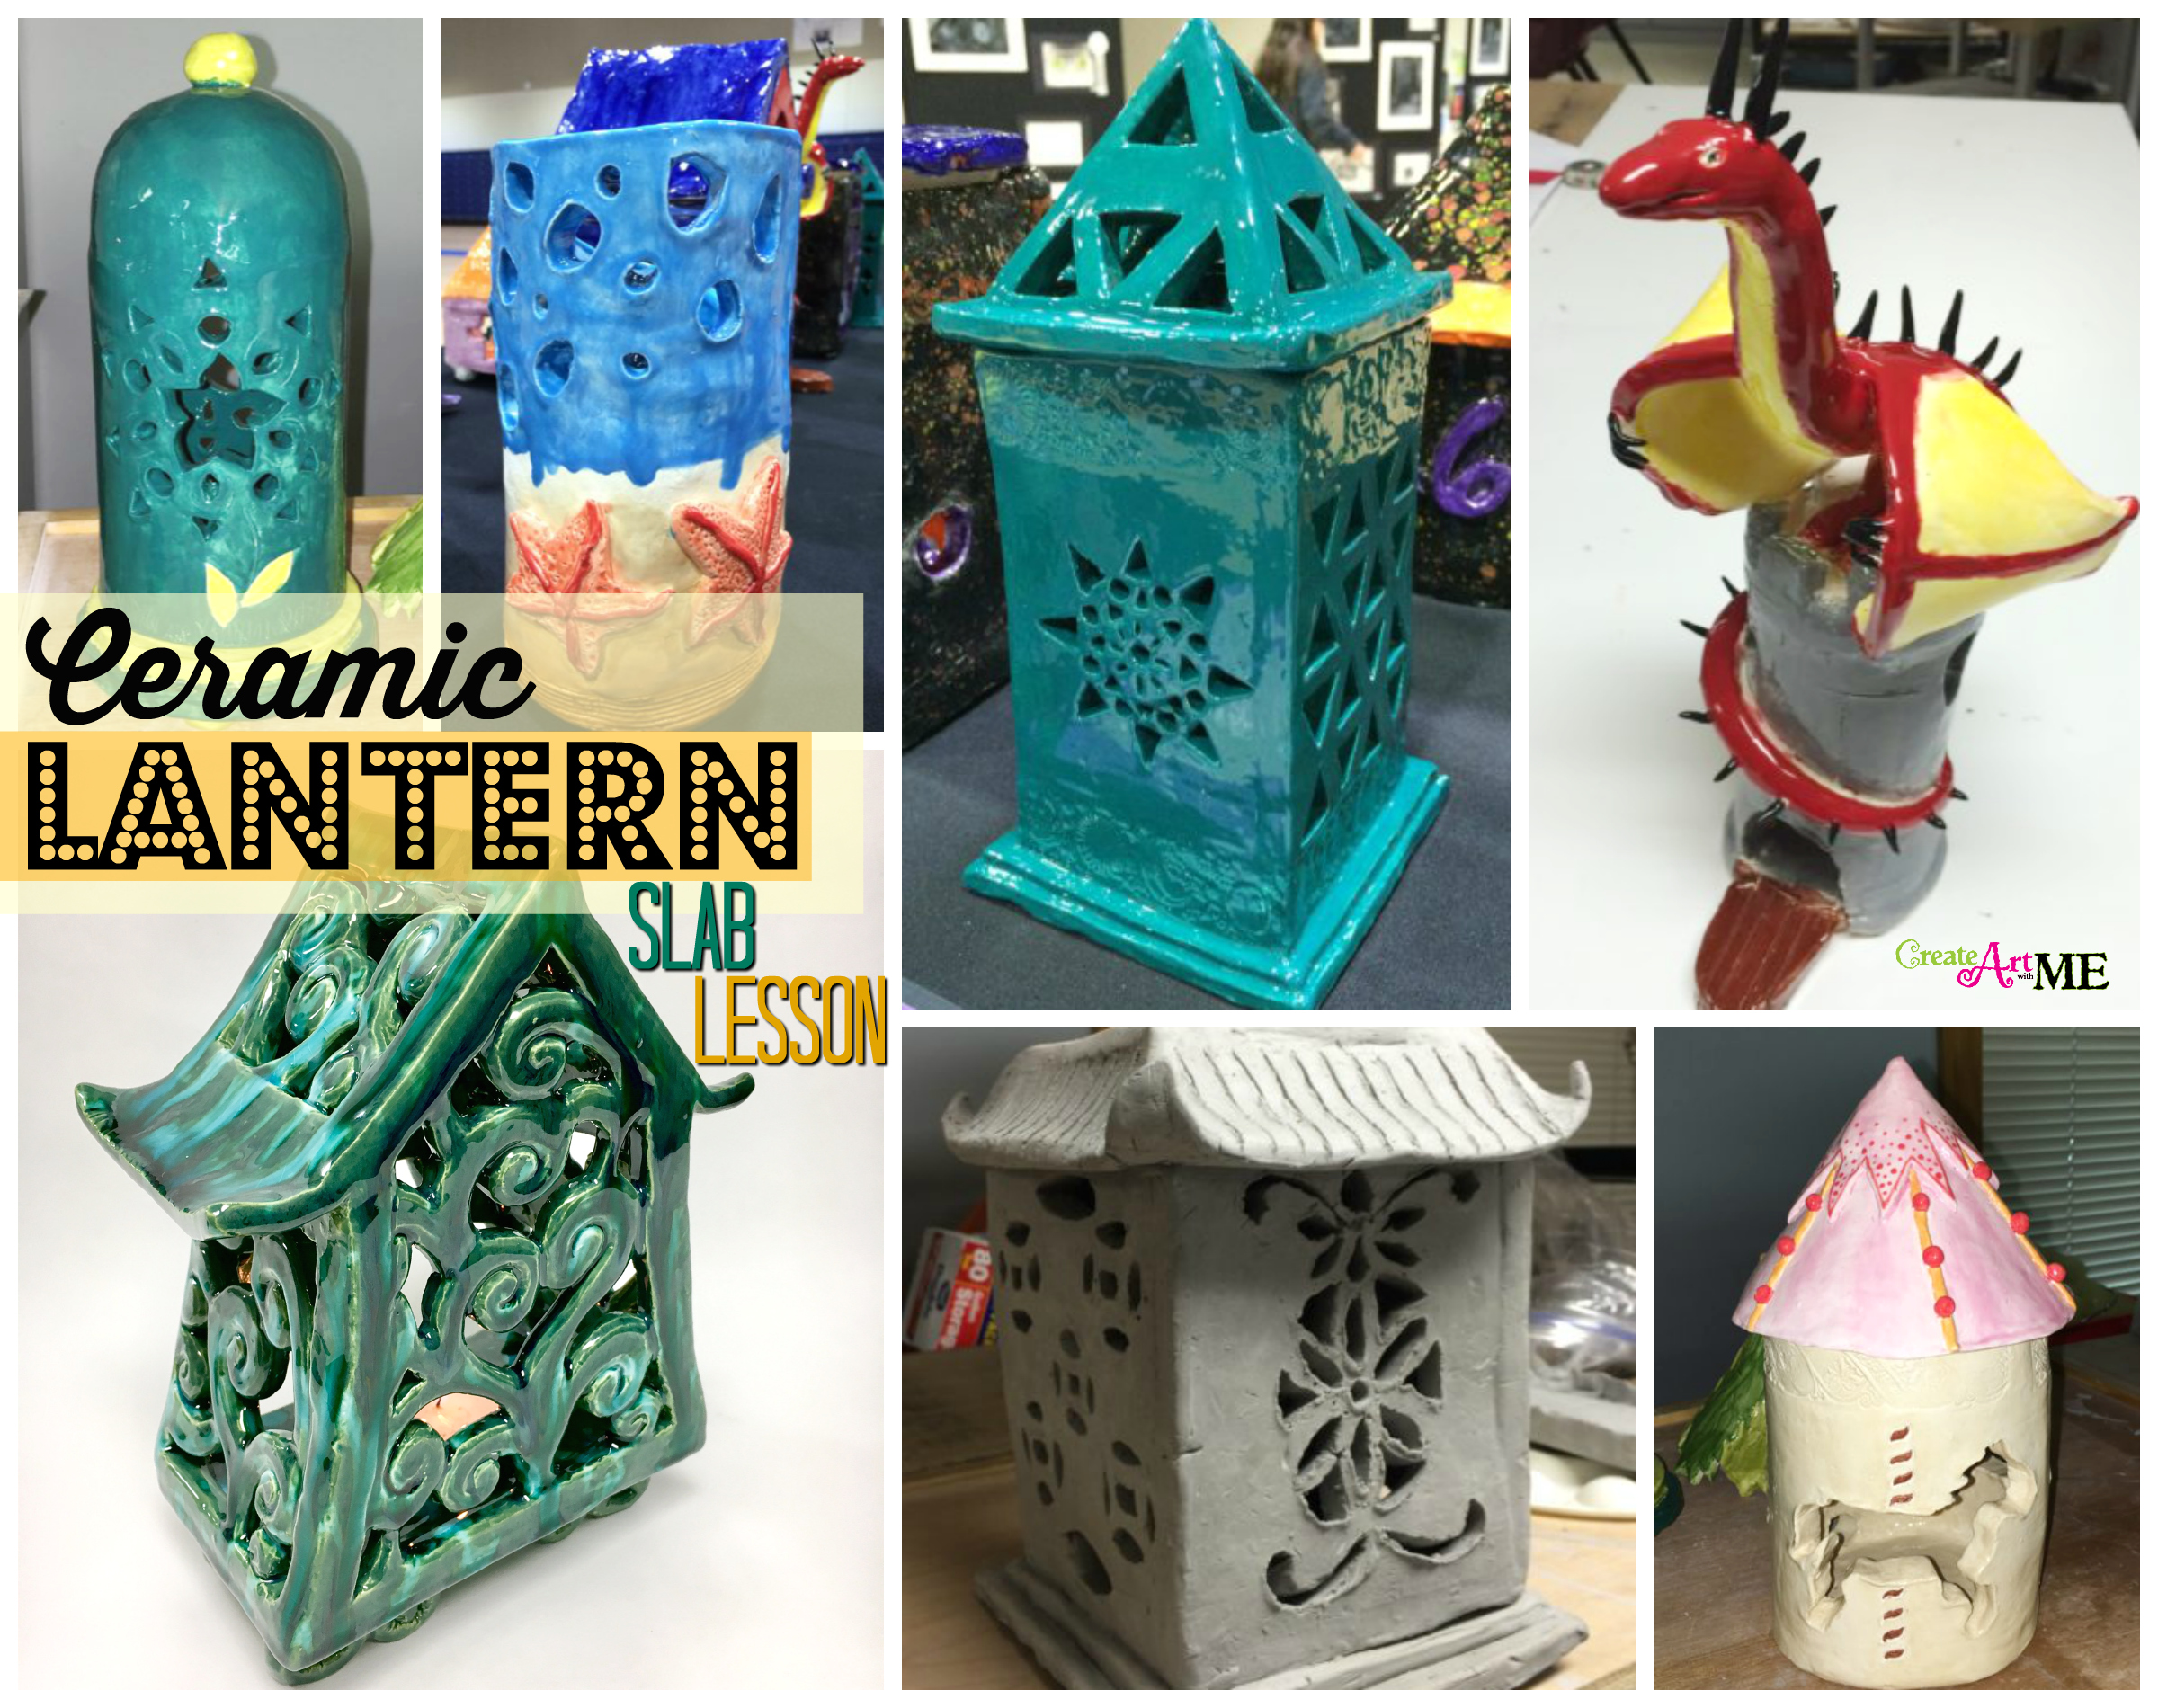 Ceramic Slab Lanterns Cut Out Design